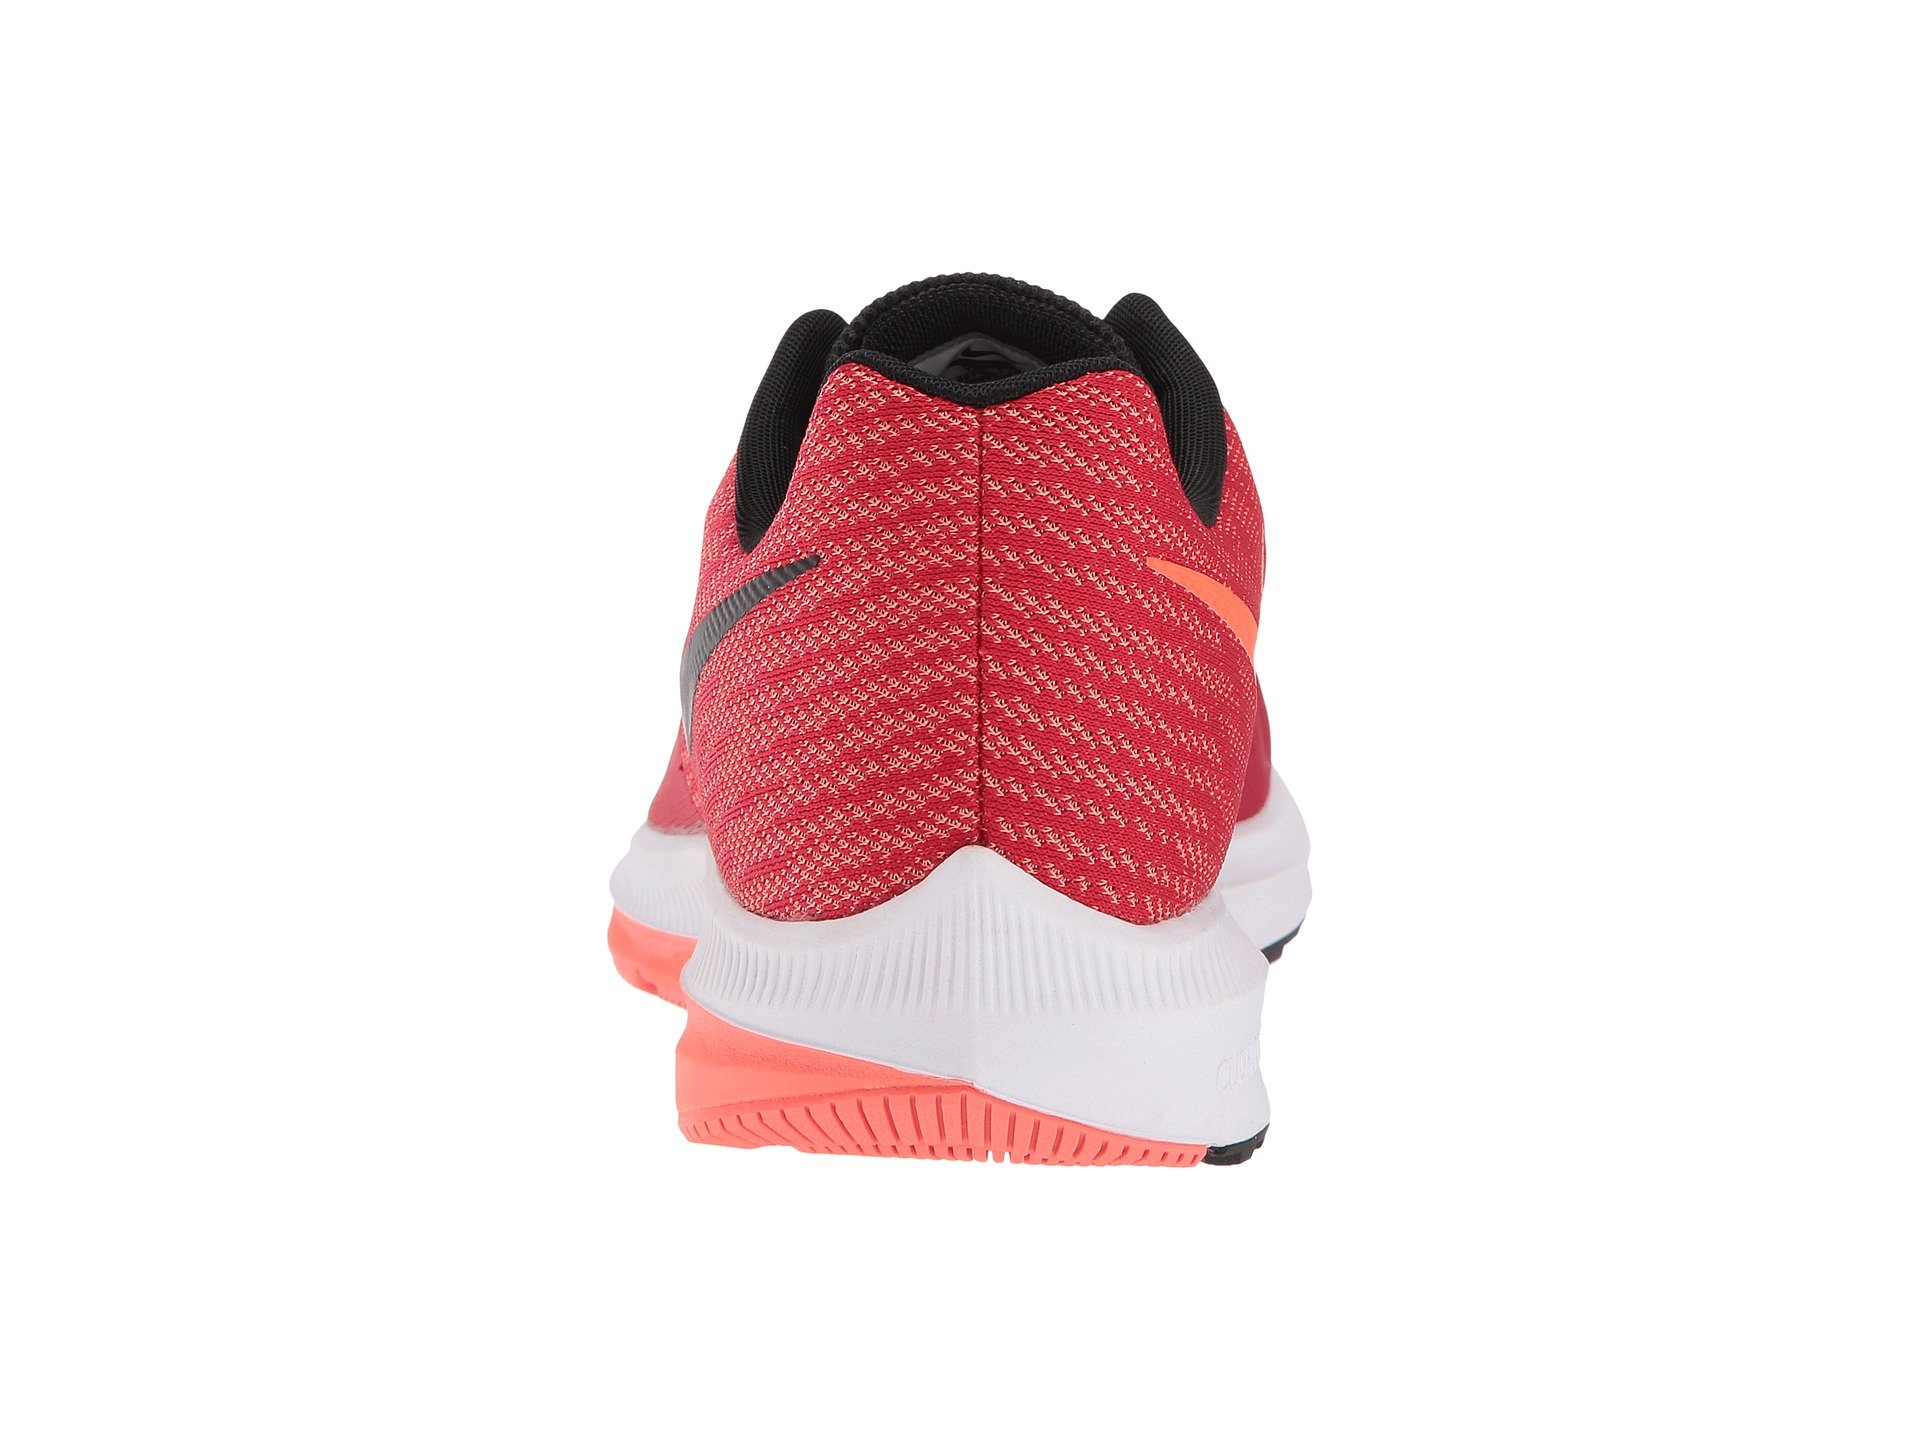 b3d48dacf8a A foot podiatrist or foot orthotics specialist would recommend you combine  comfort and style. Shop nike shoes